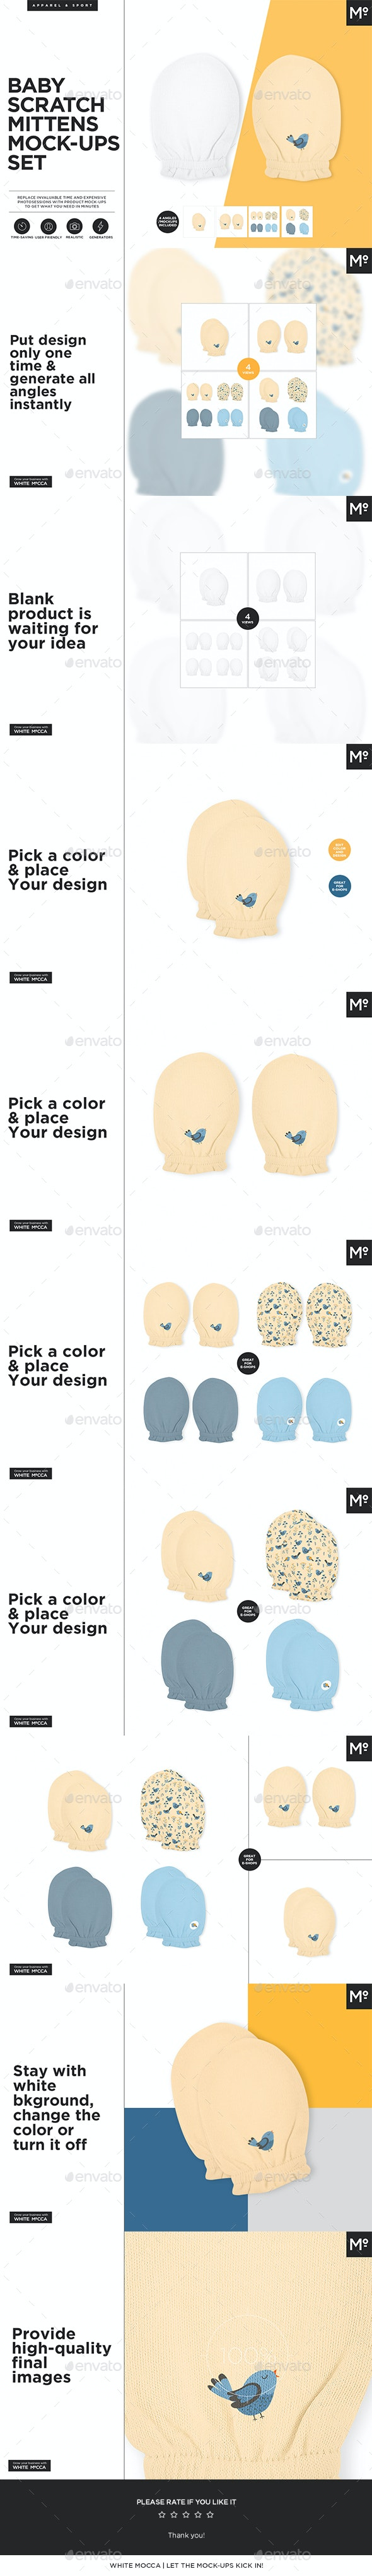 Baby Scratch Mittens Mock-ups Generator - Miscellaneous Apparel